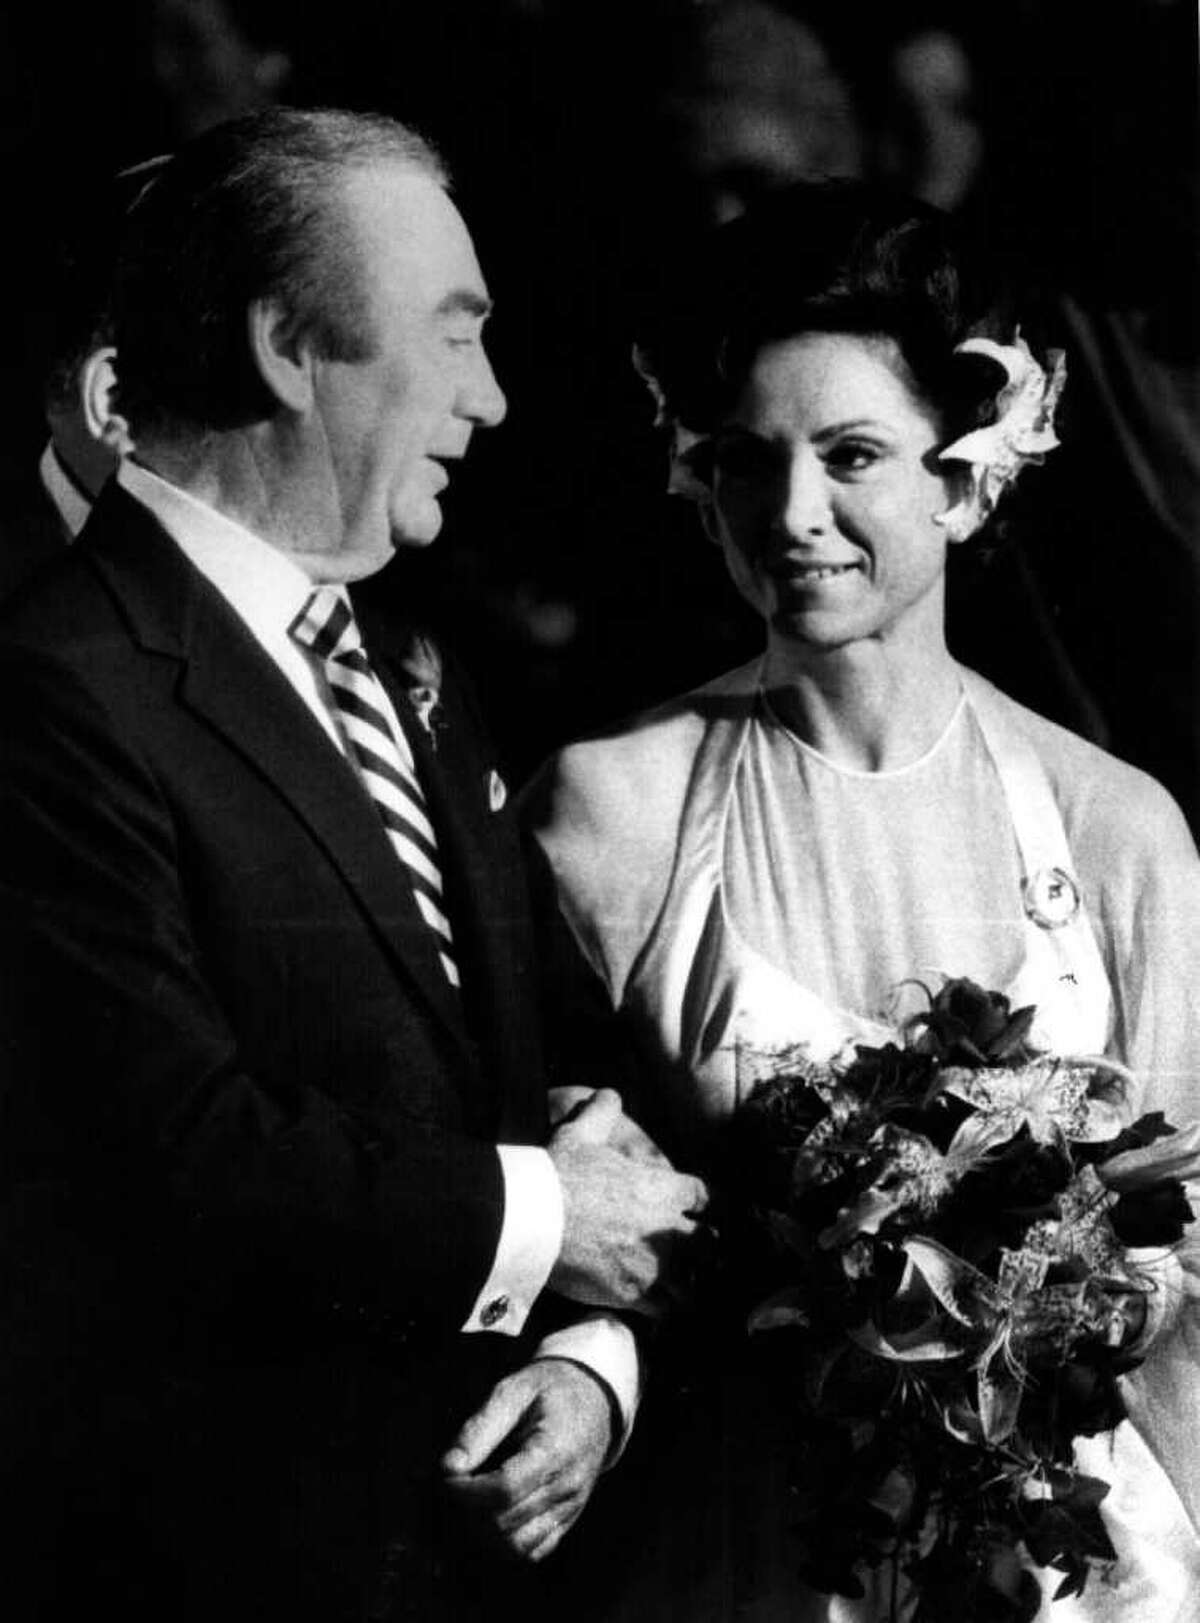 GOV. HUGH CAREY's marriage to Evangeline 4/15/81 - (Times Union Archive)